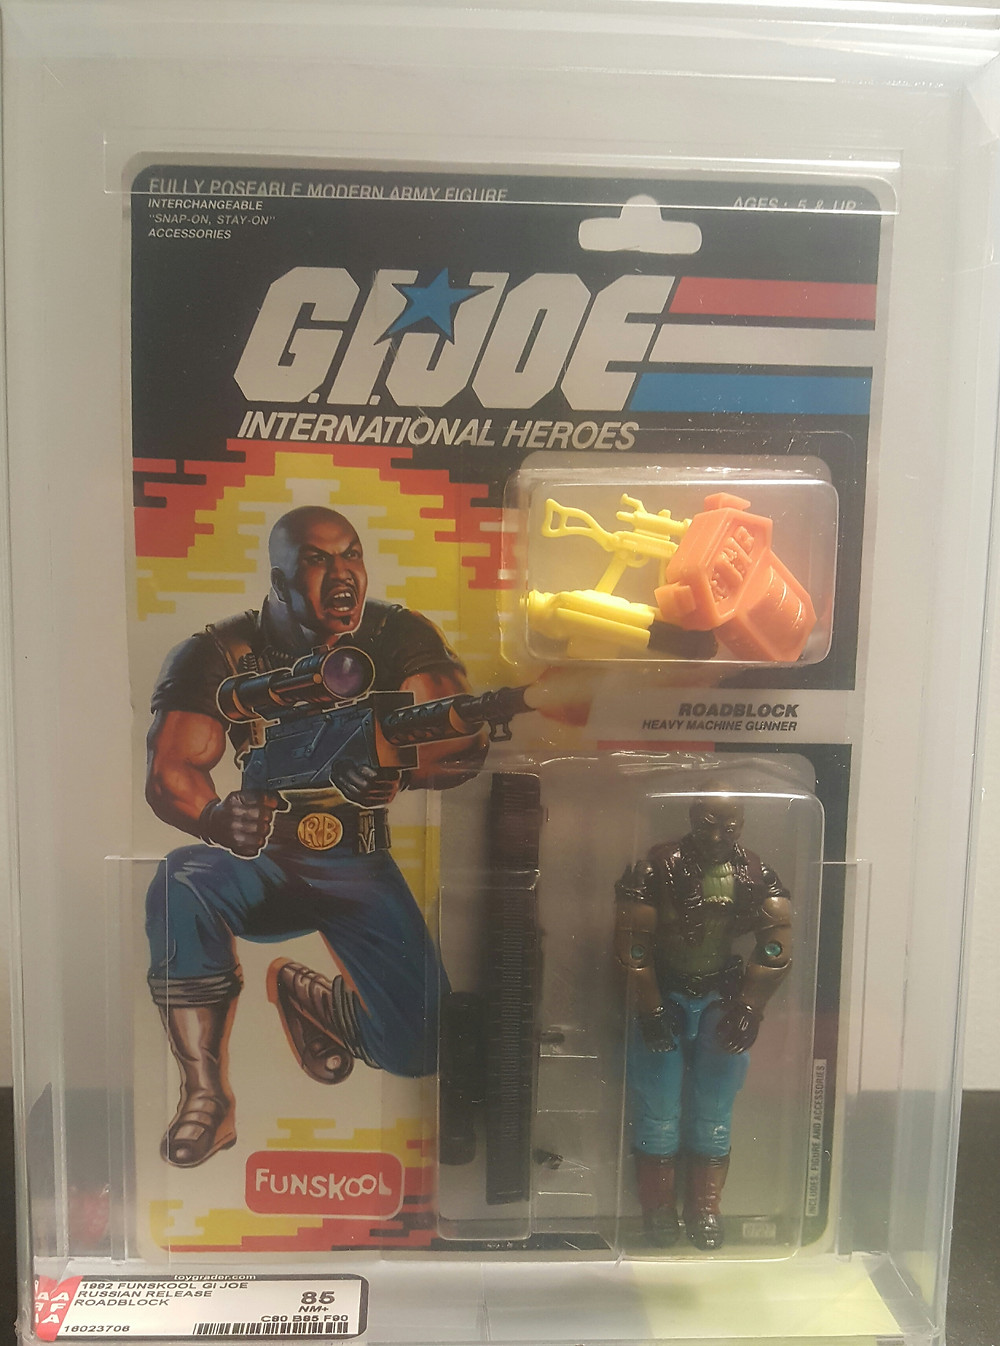 Vrhobbies Action Figures Toy Shows and Action Figure Con and Comic Book Show-Allentown Http://www.valleygoto.com